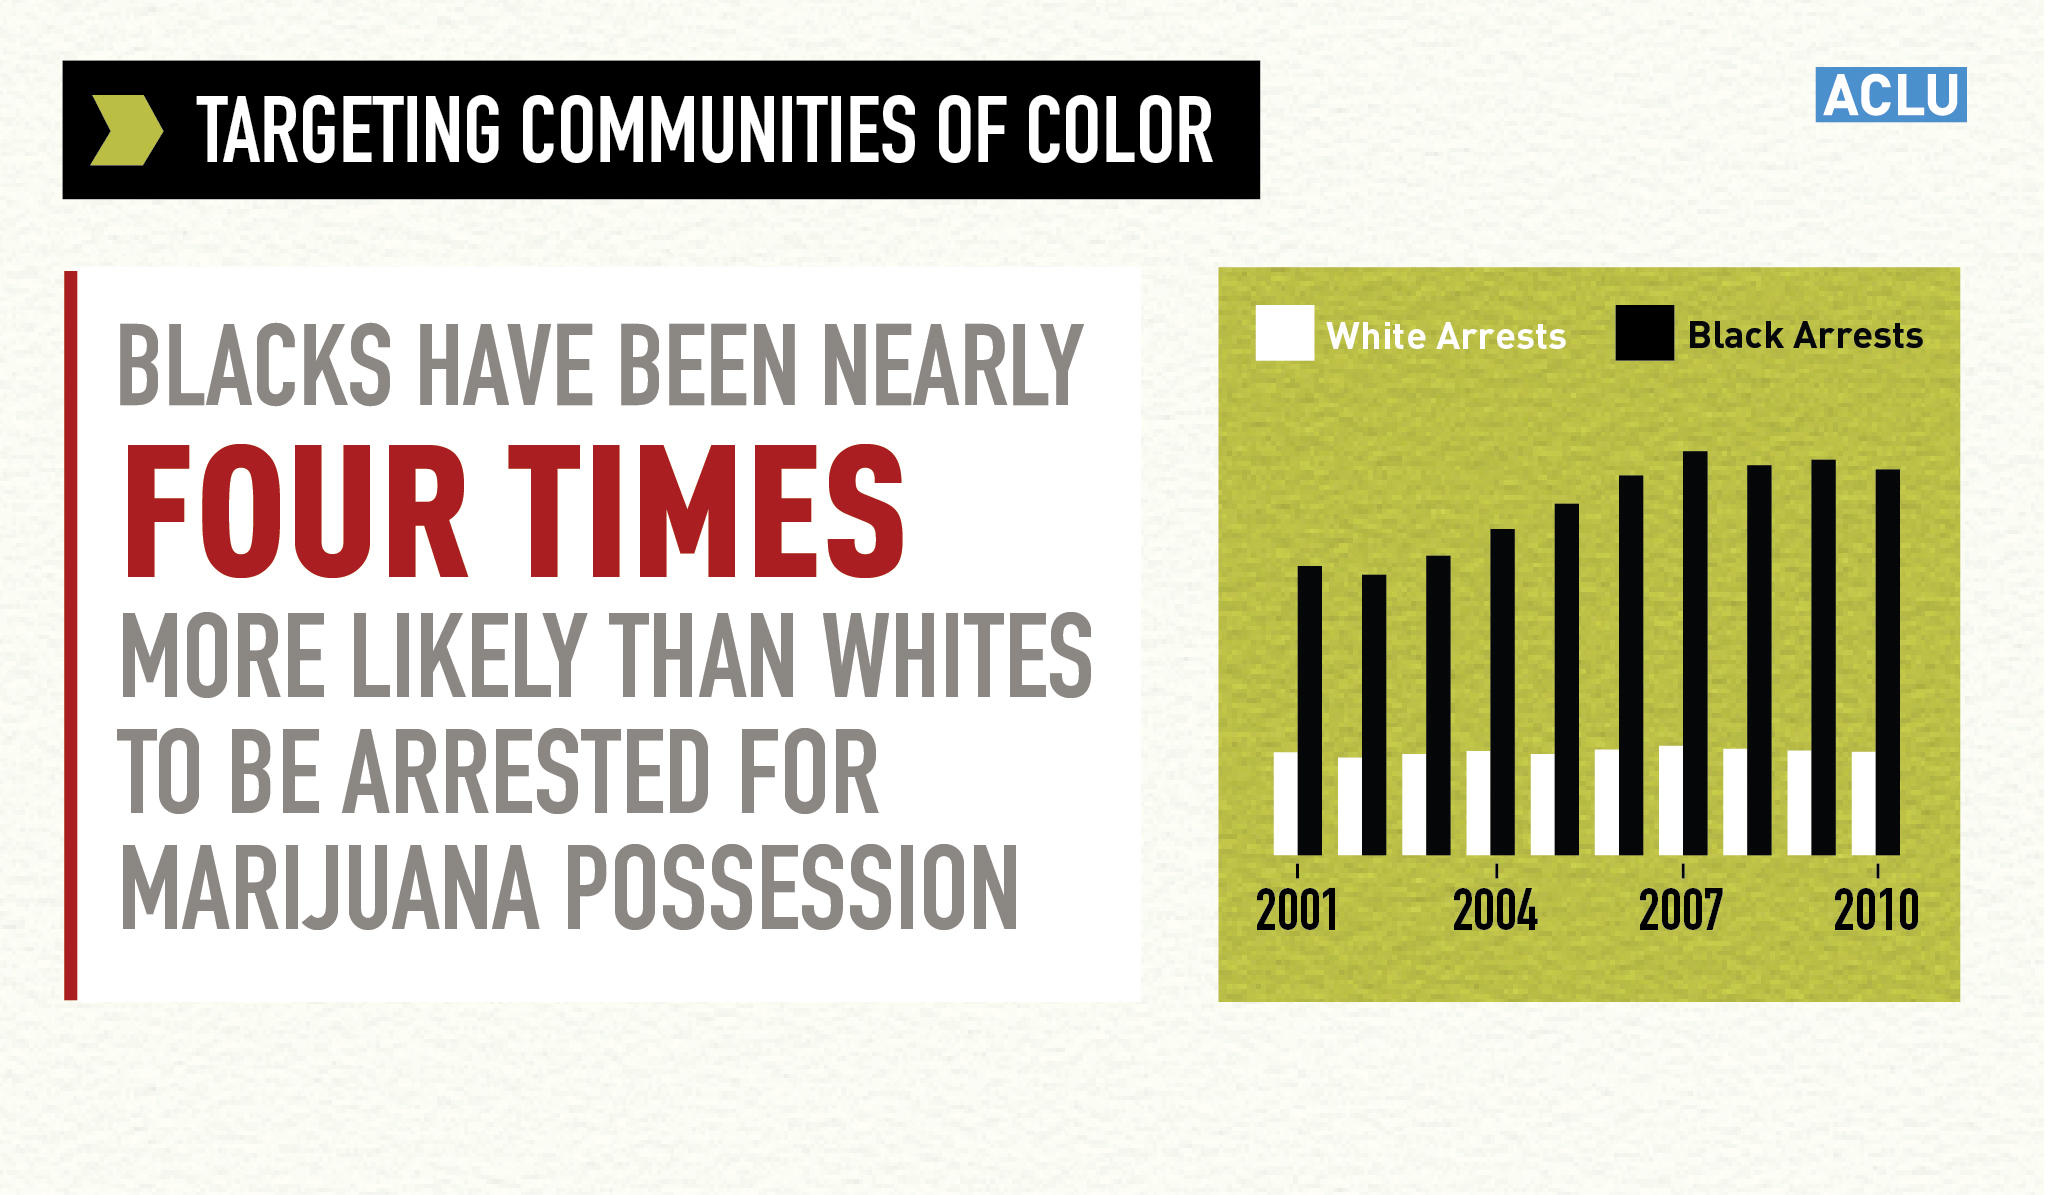 Minorities Are Targeted for marijuana Possession